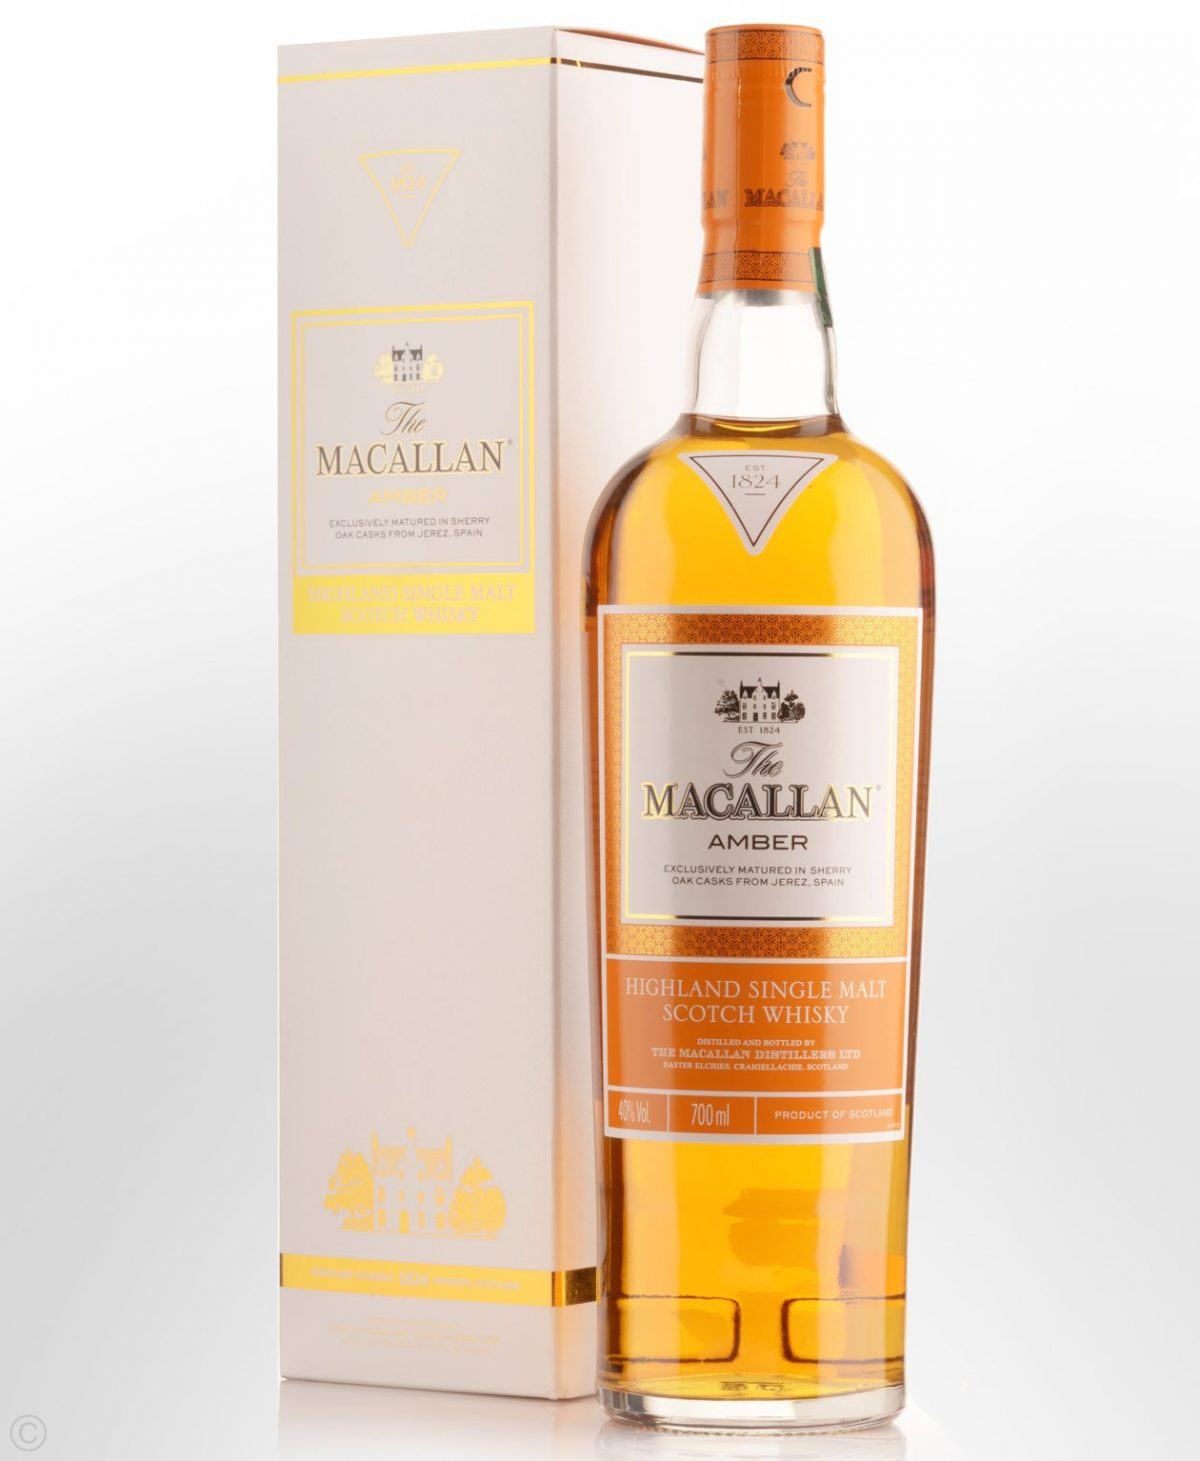 The Macallan Amber Single Malt Scotch Whisky 700ml 40 % abv